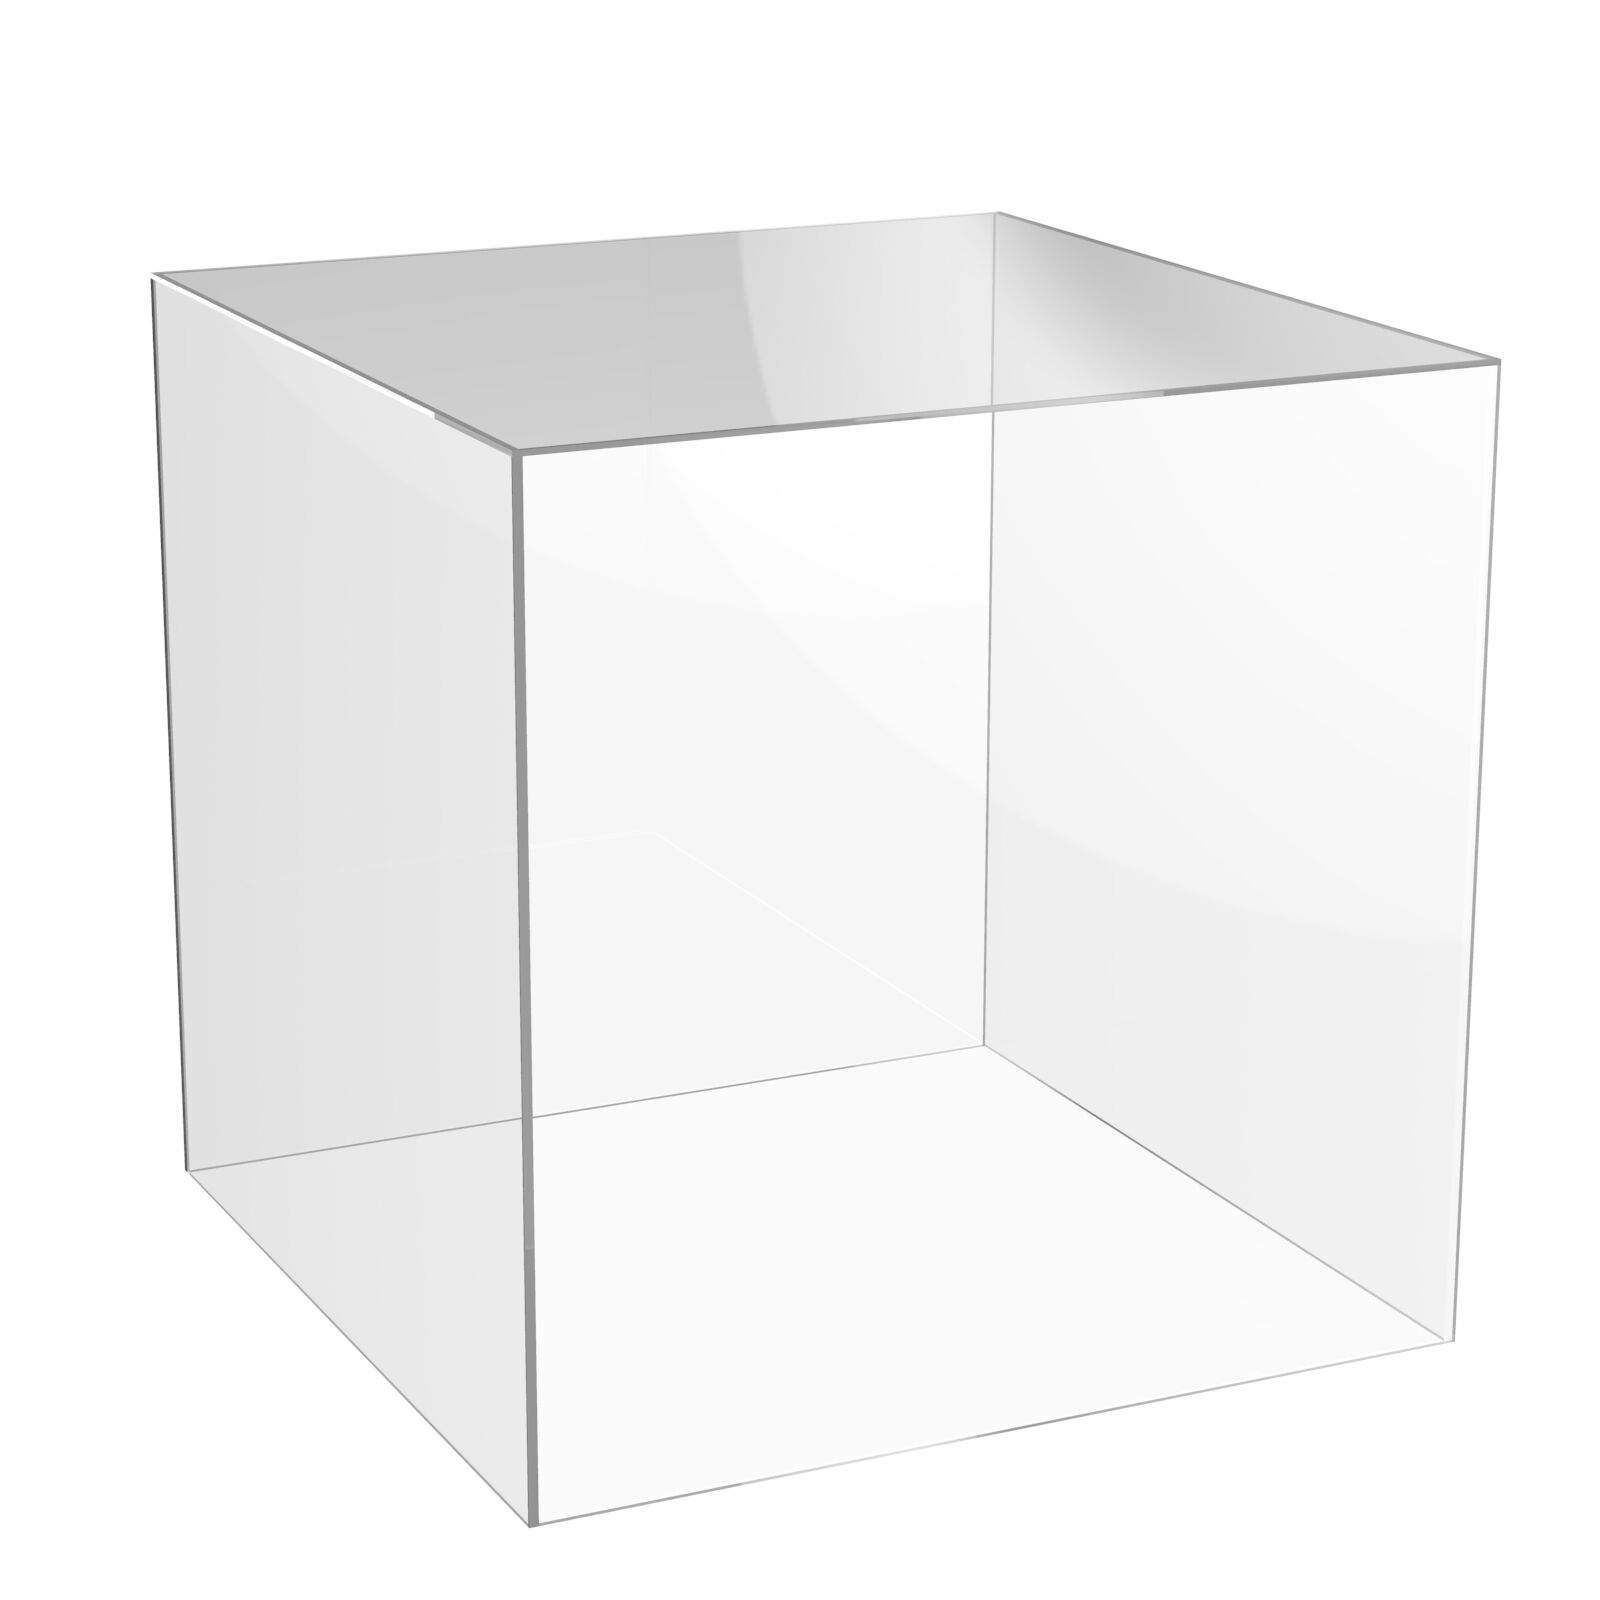 Acrylic Cube Display Stand Square 5 Sided Box Perspex Tray Case Shop Holder